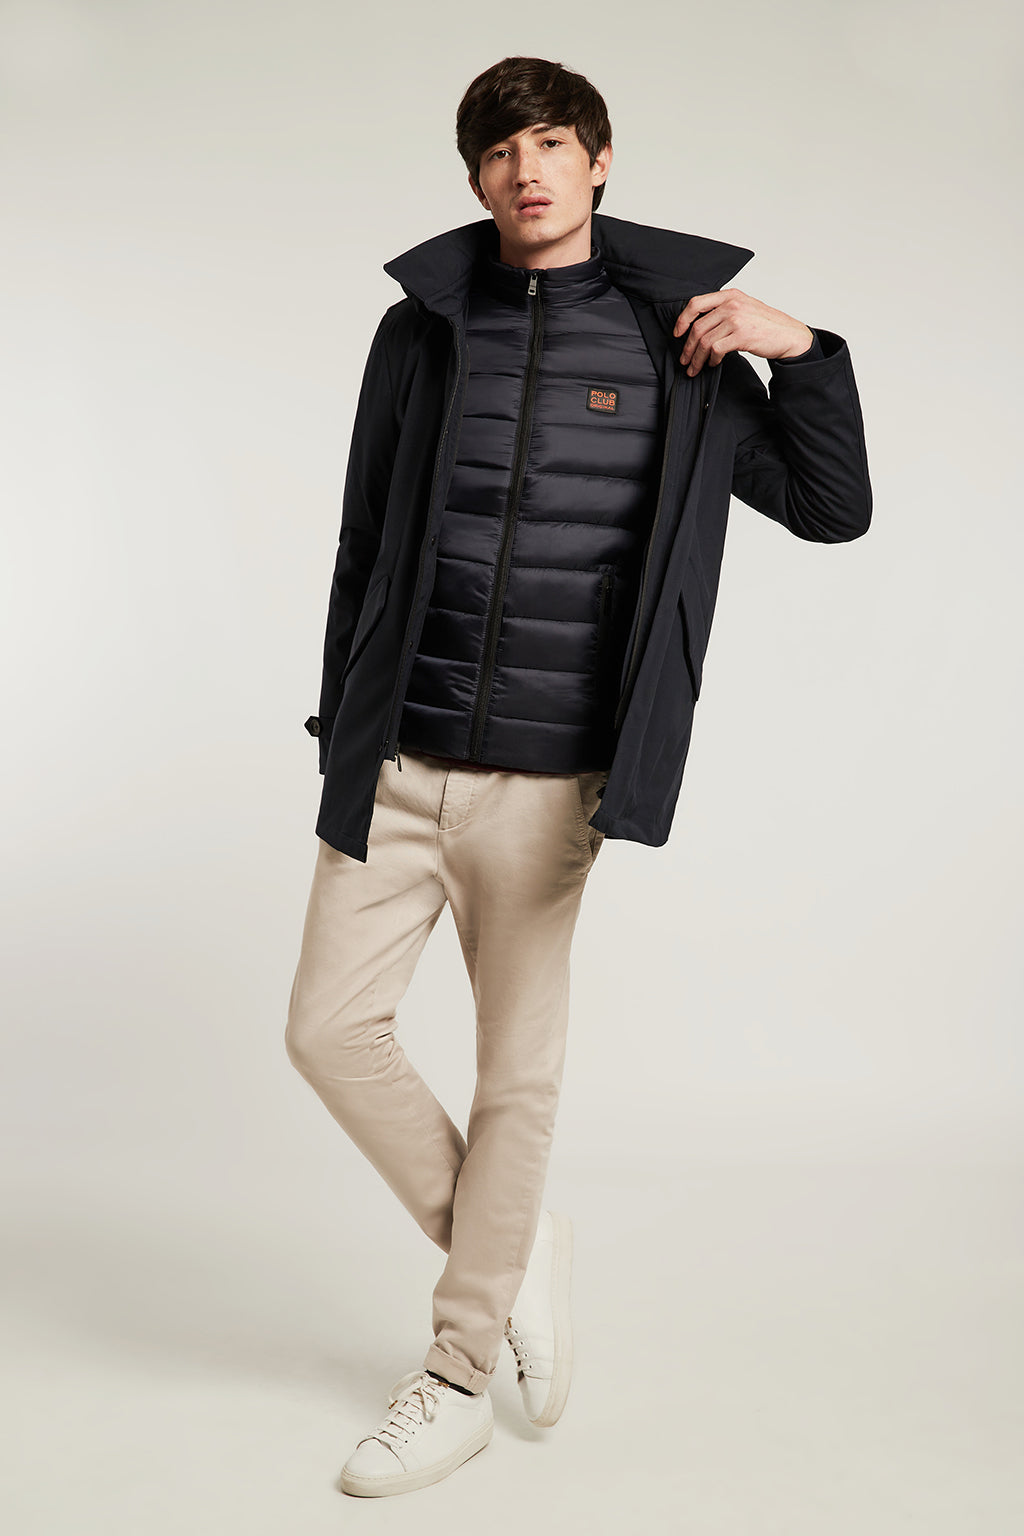 Navy blue parka and jacket